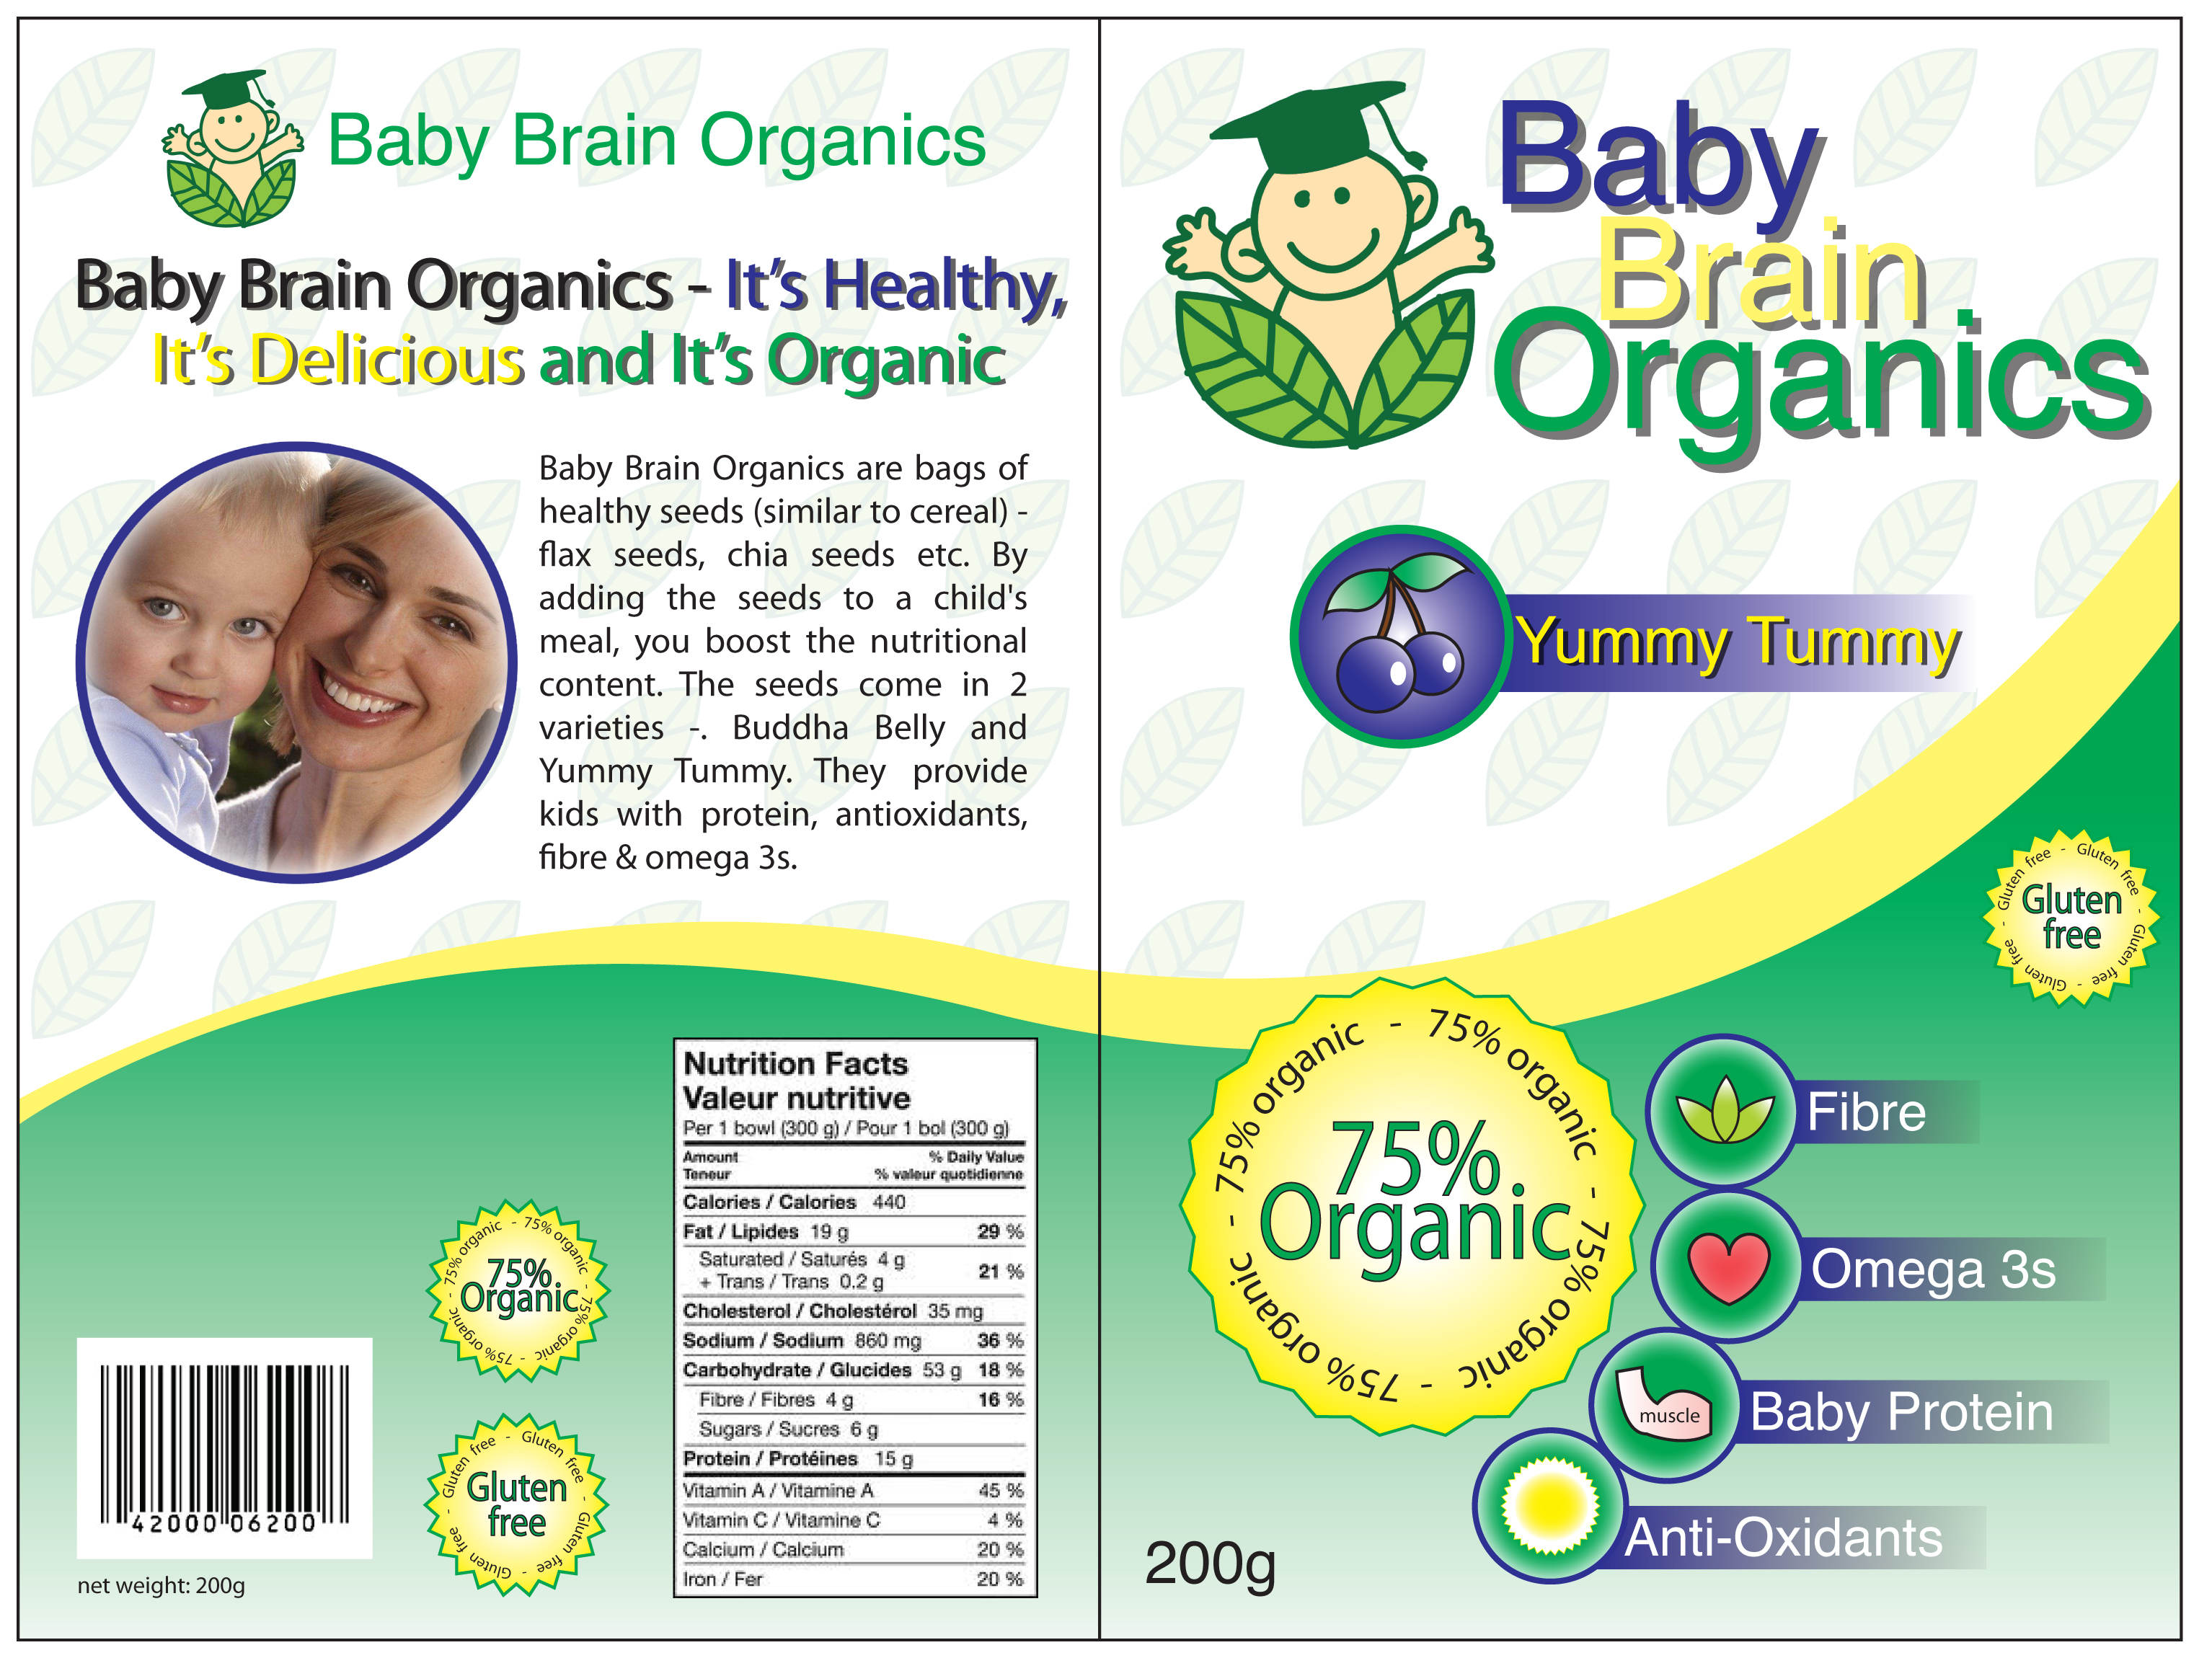 Packaging Design by Genesis Orland Colendres - Entry No. 70 in the Packaging Design Contest Baby Brain Organics Packaging Design.